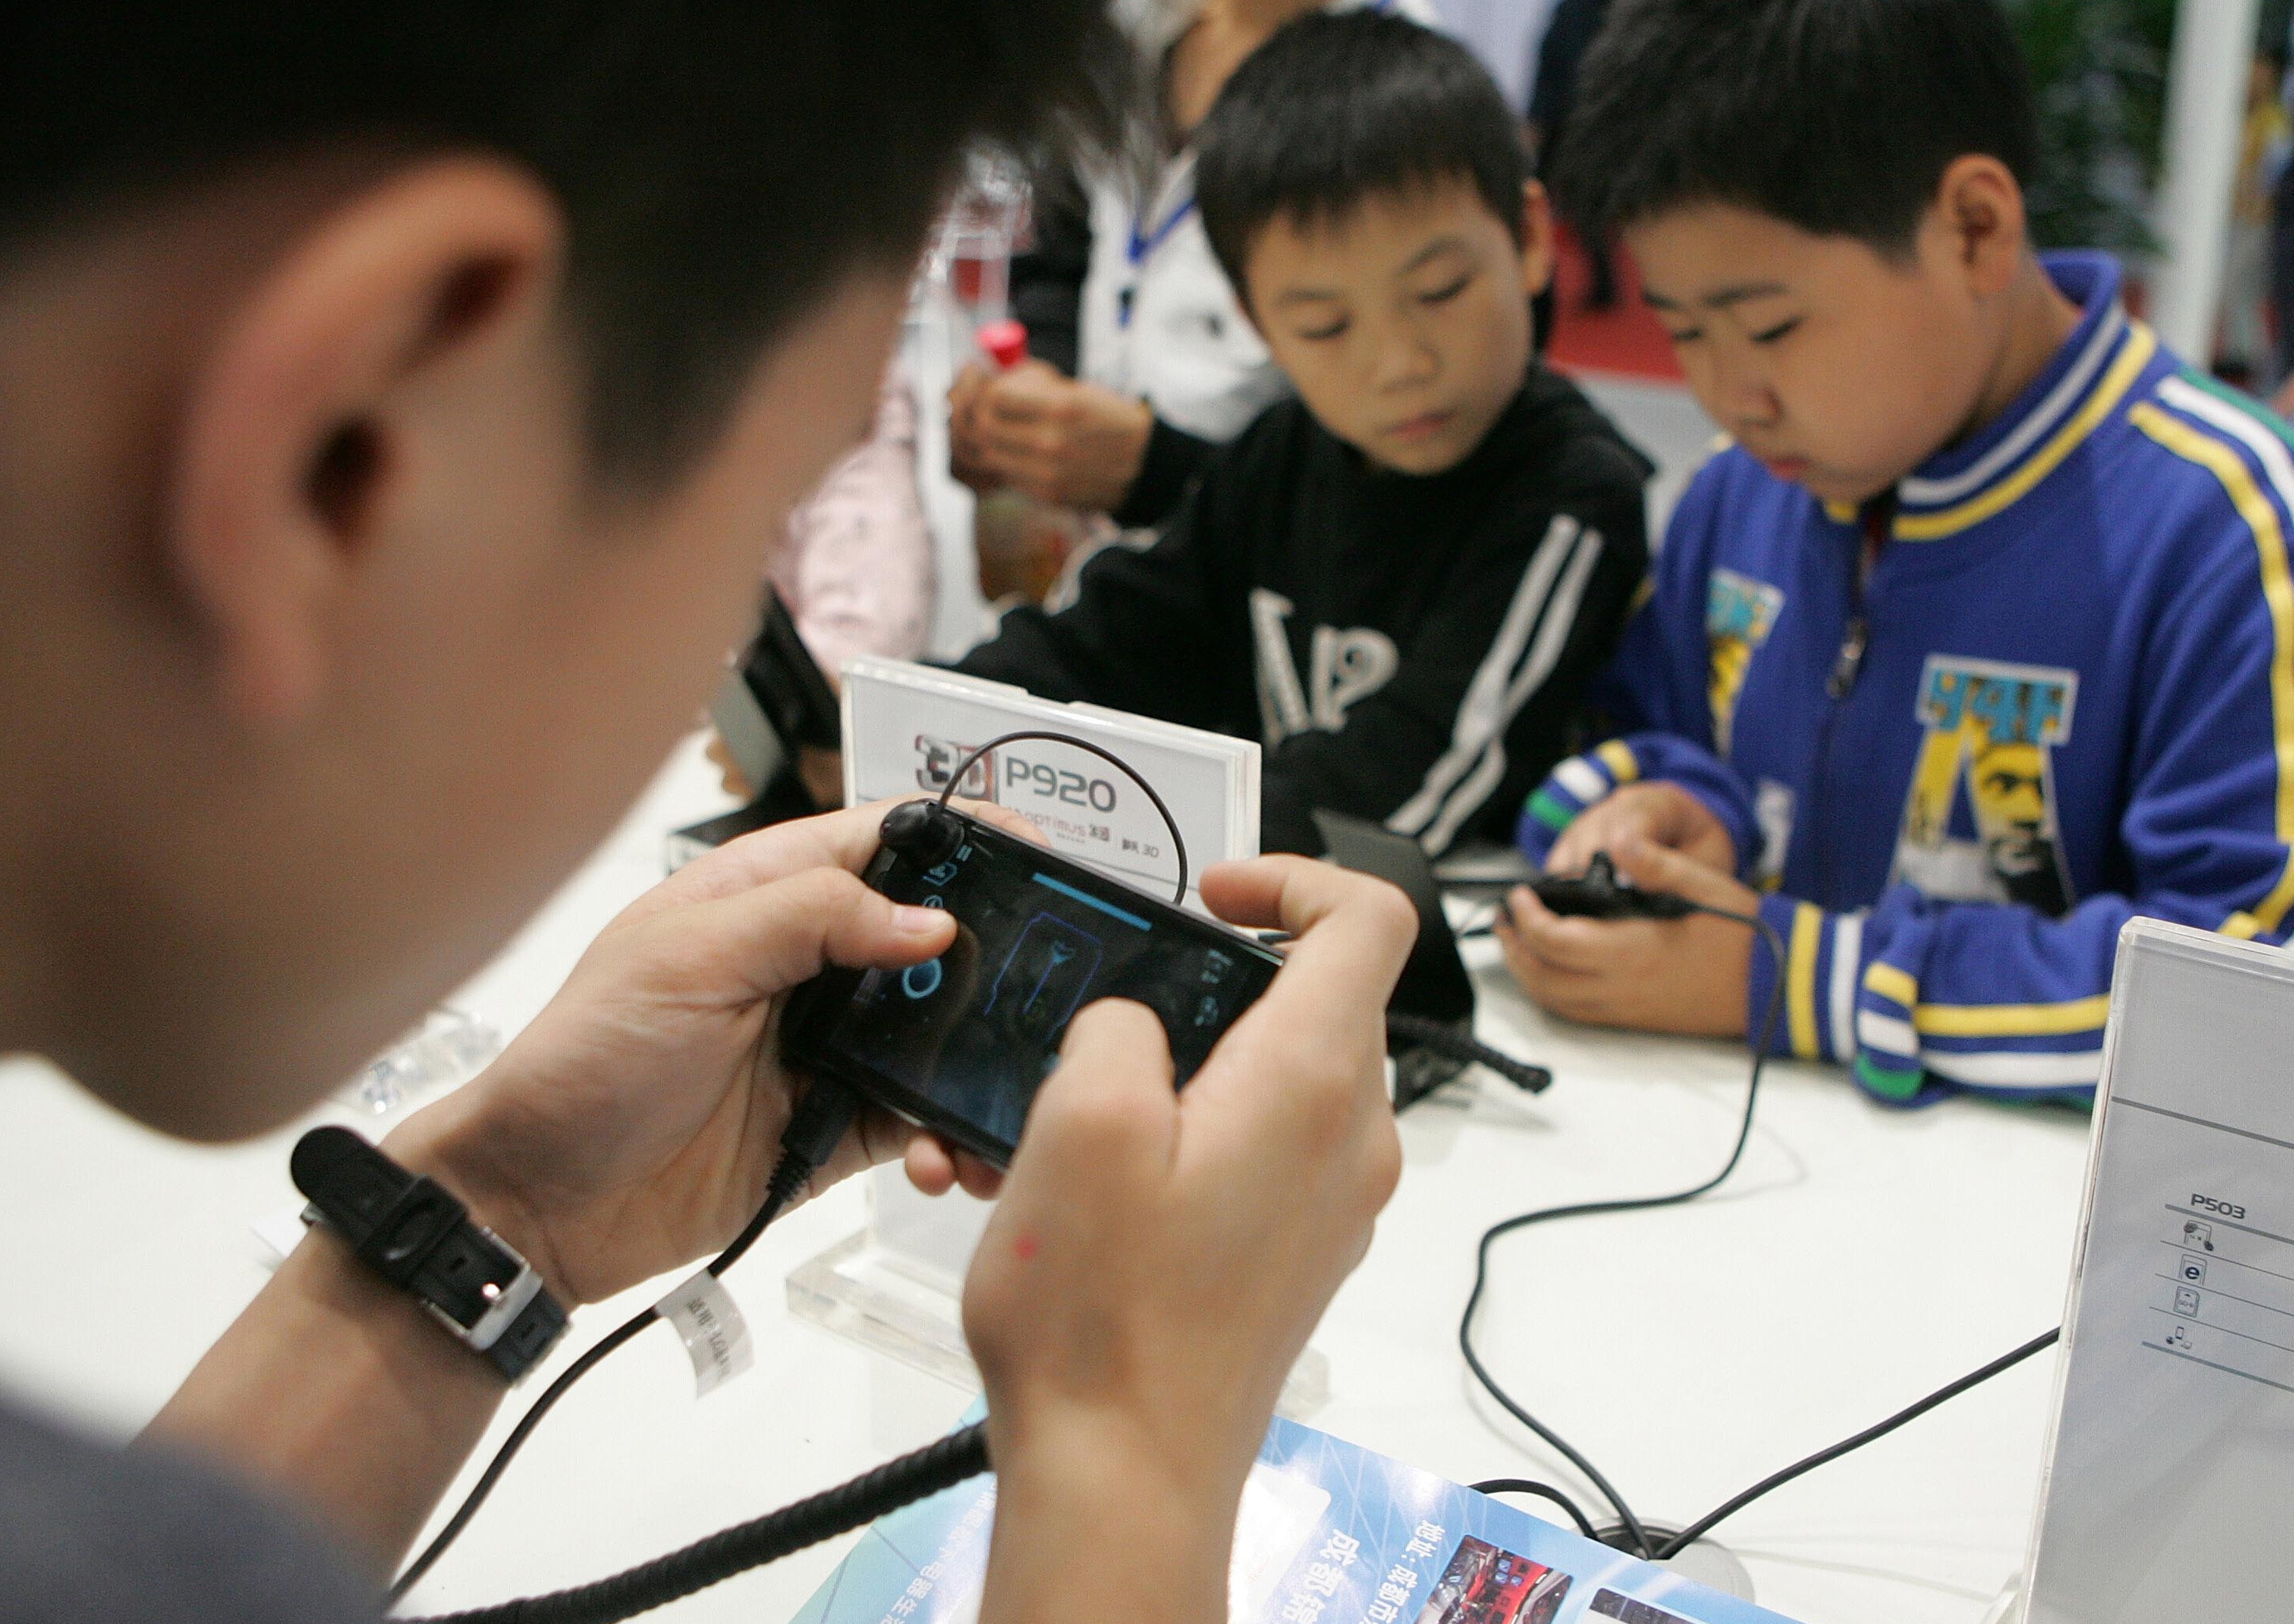 vietnam game market, vietnam gaming industry, southeast asia gaming market